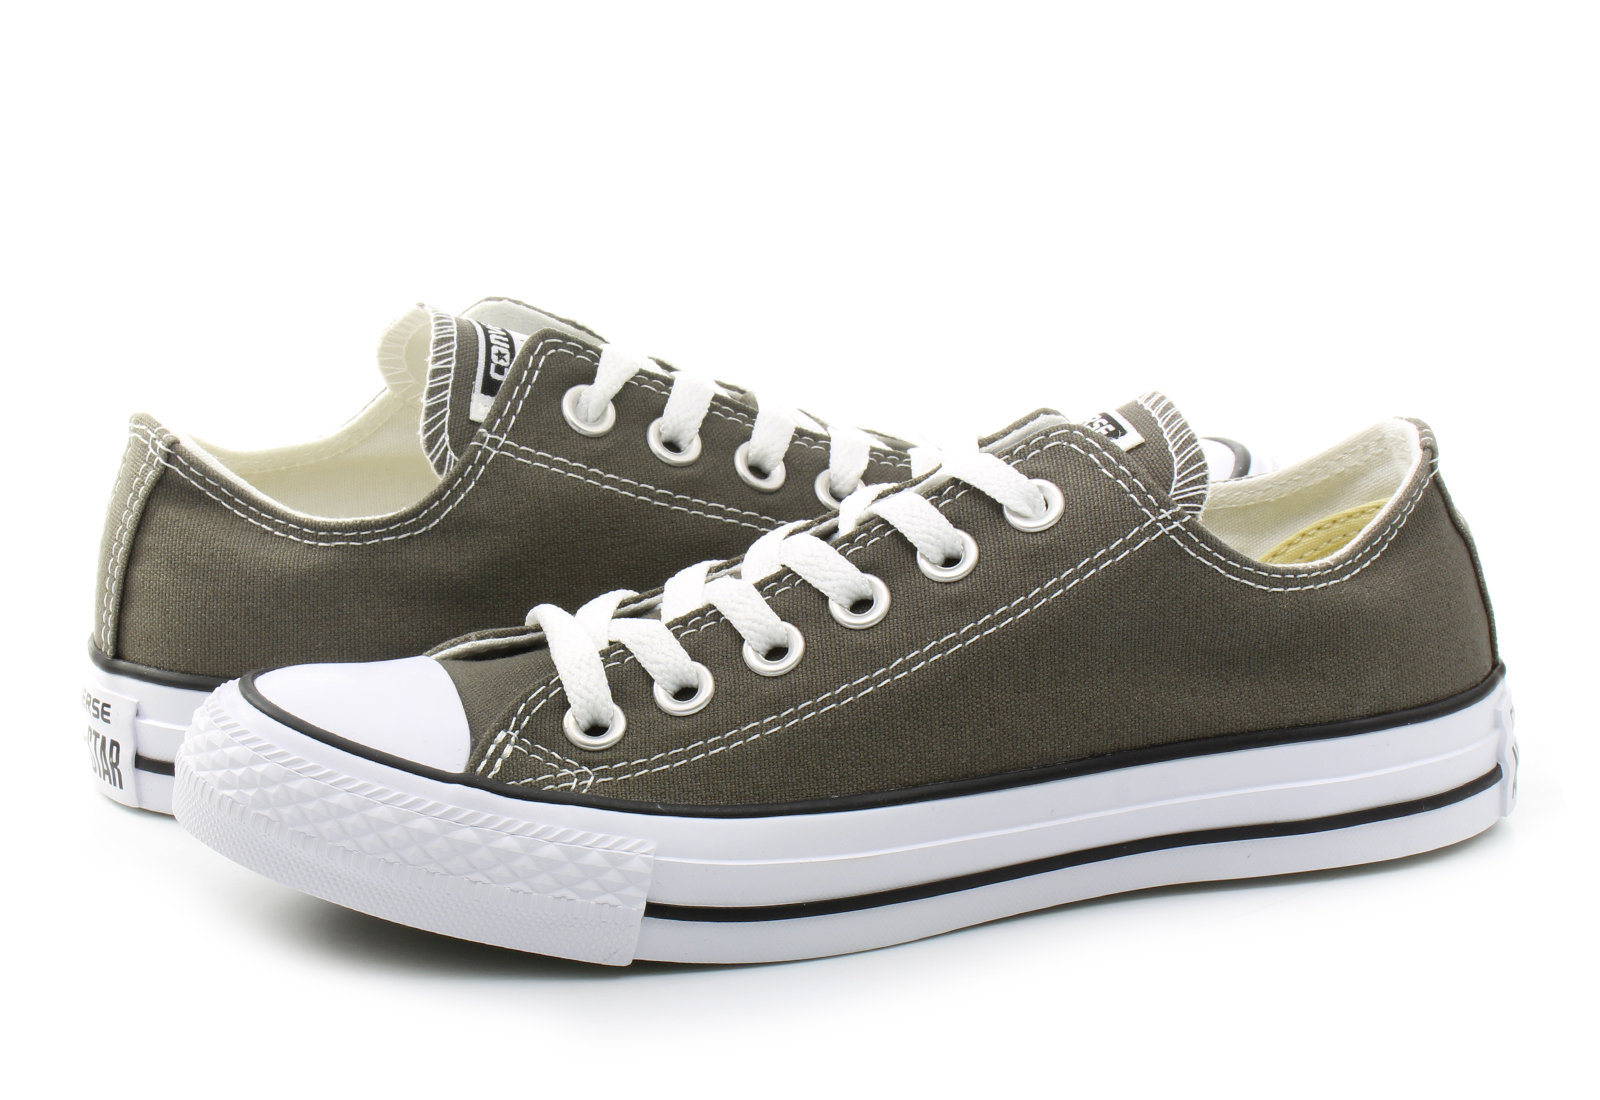 7226929a32b4 Converse Sneakers - Chuck Taylor All Star Core Ox - 1J794C - Online ...